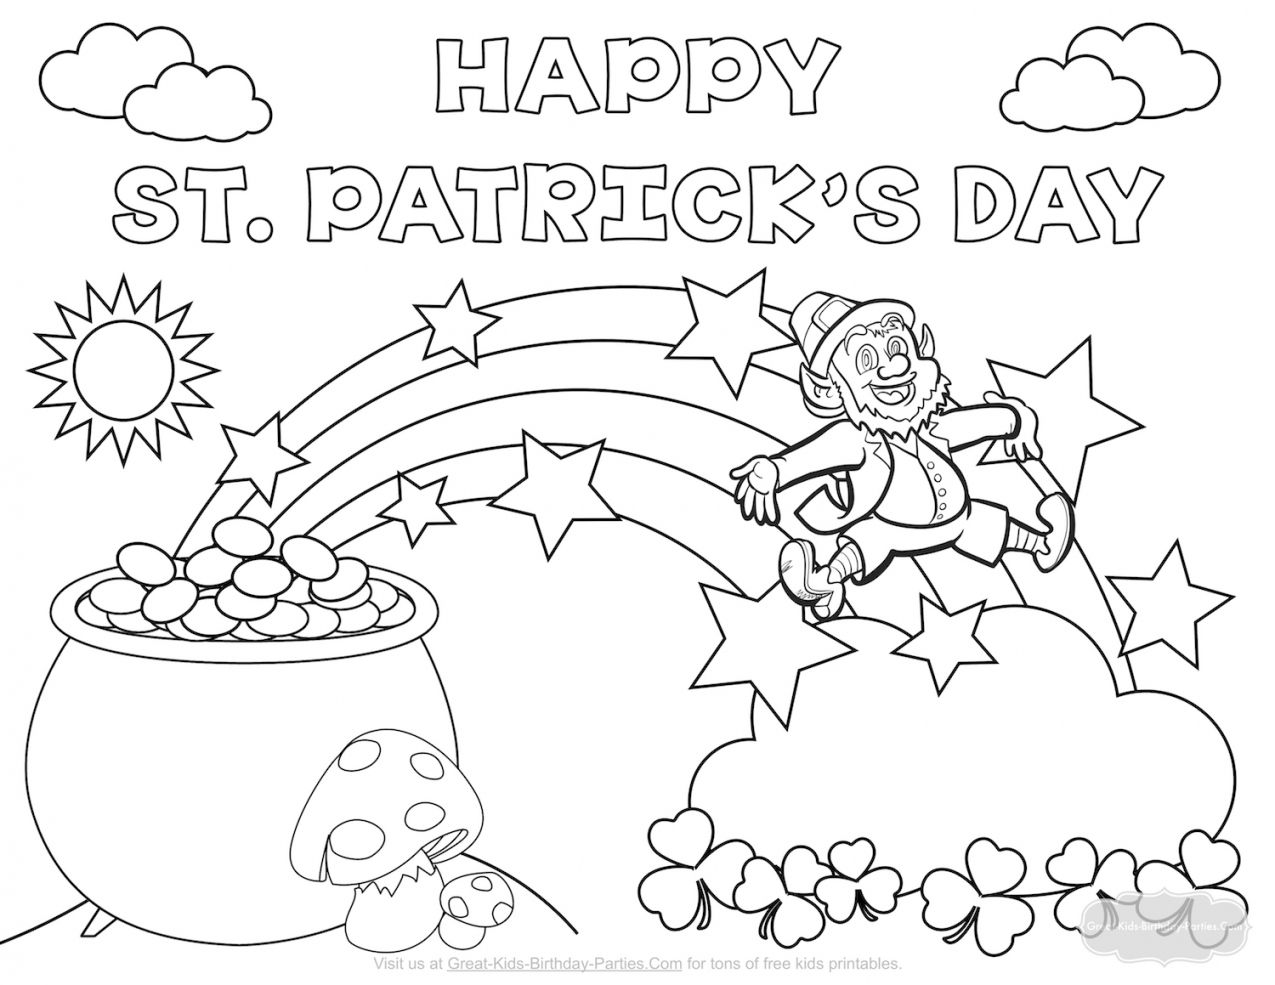 St Patricks Day Coloring Page Bertmilne Intended For